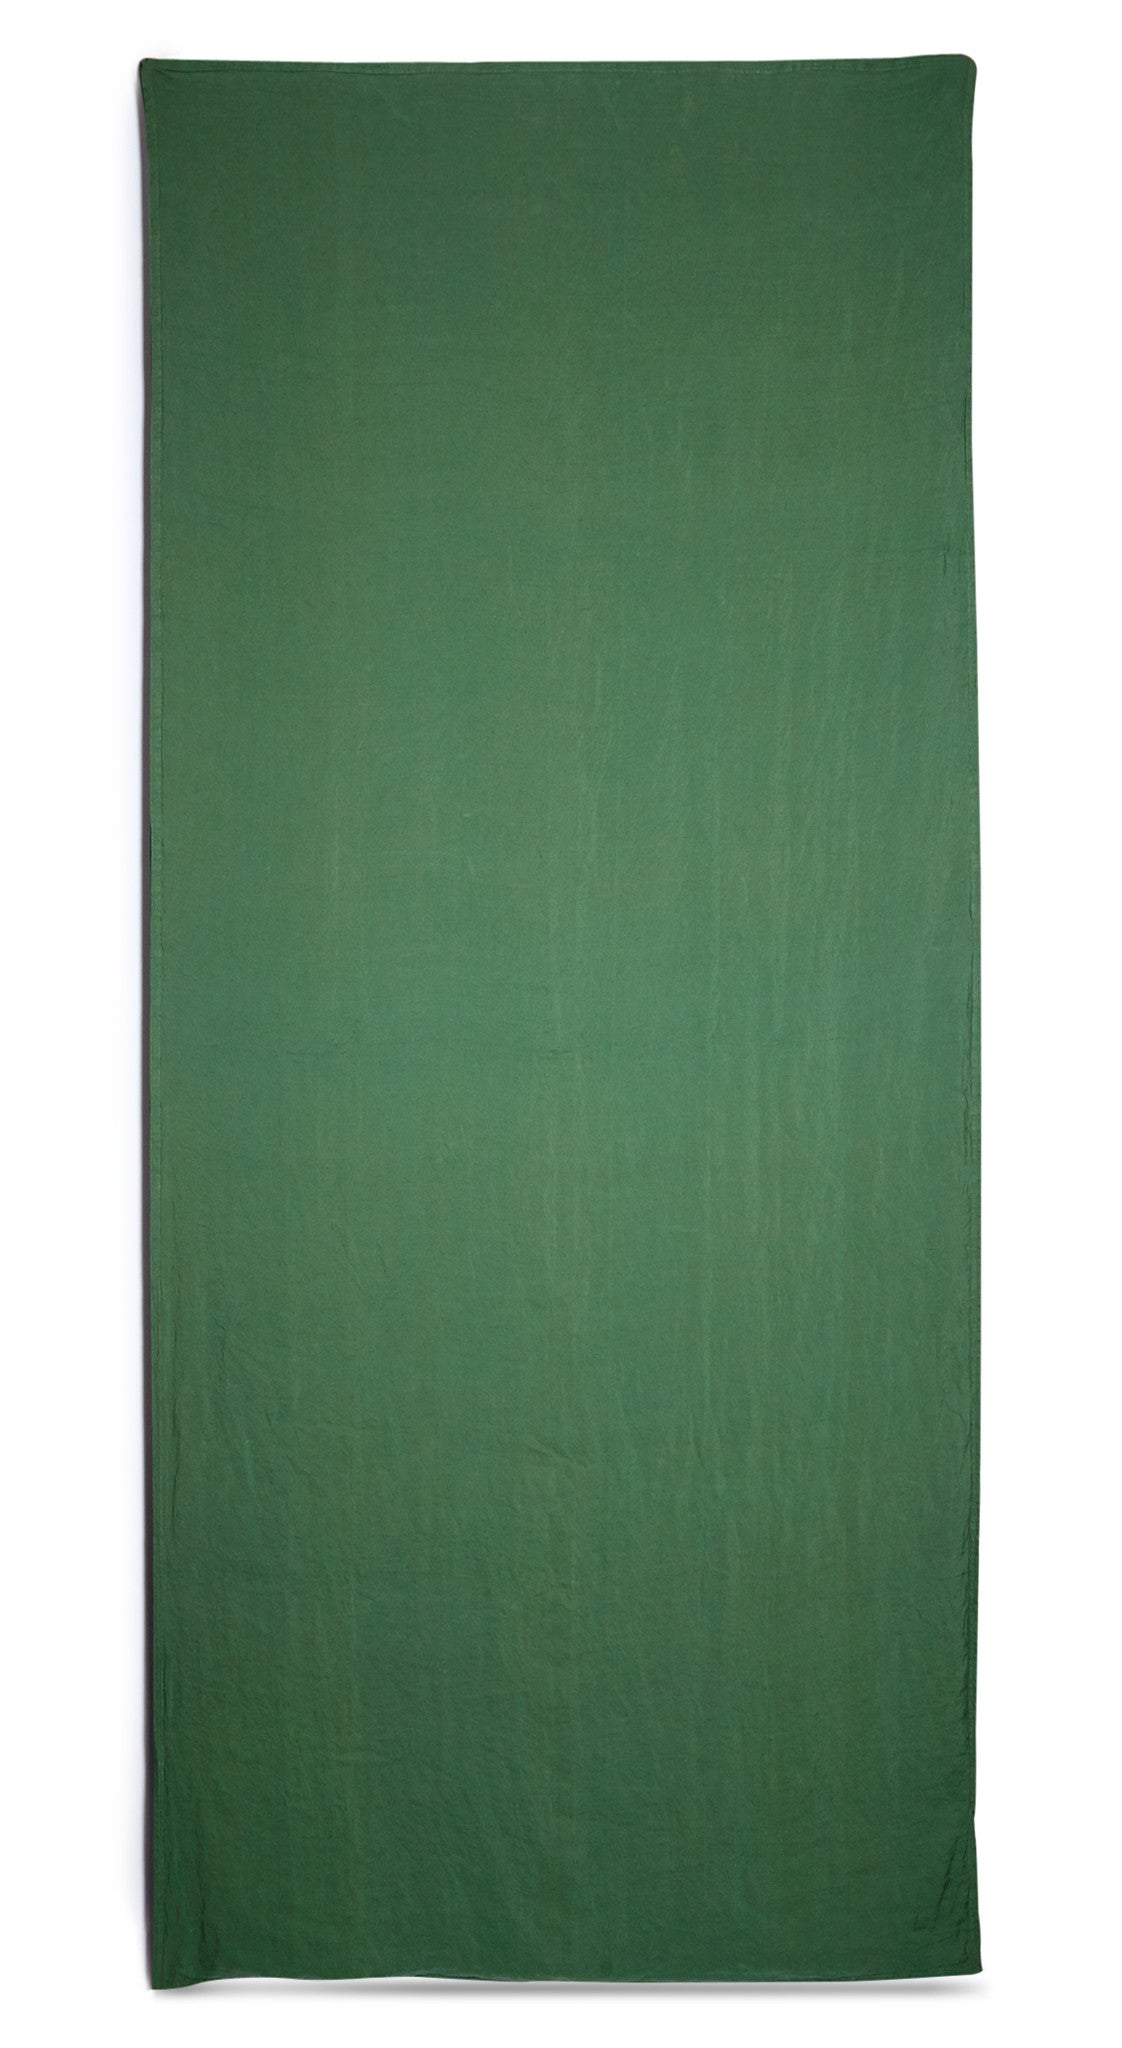 Reversible Linen Tablecloth In Slate Grey And Lime Green